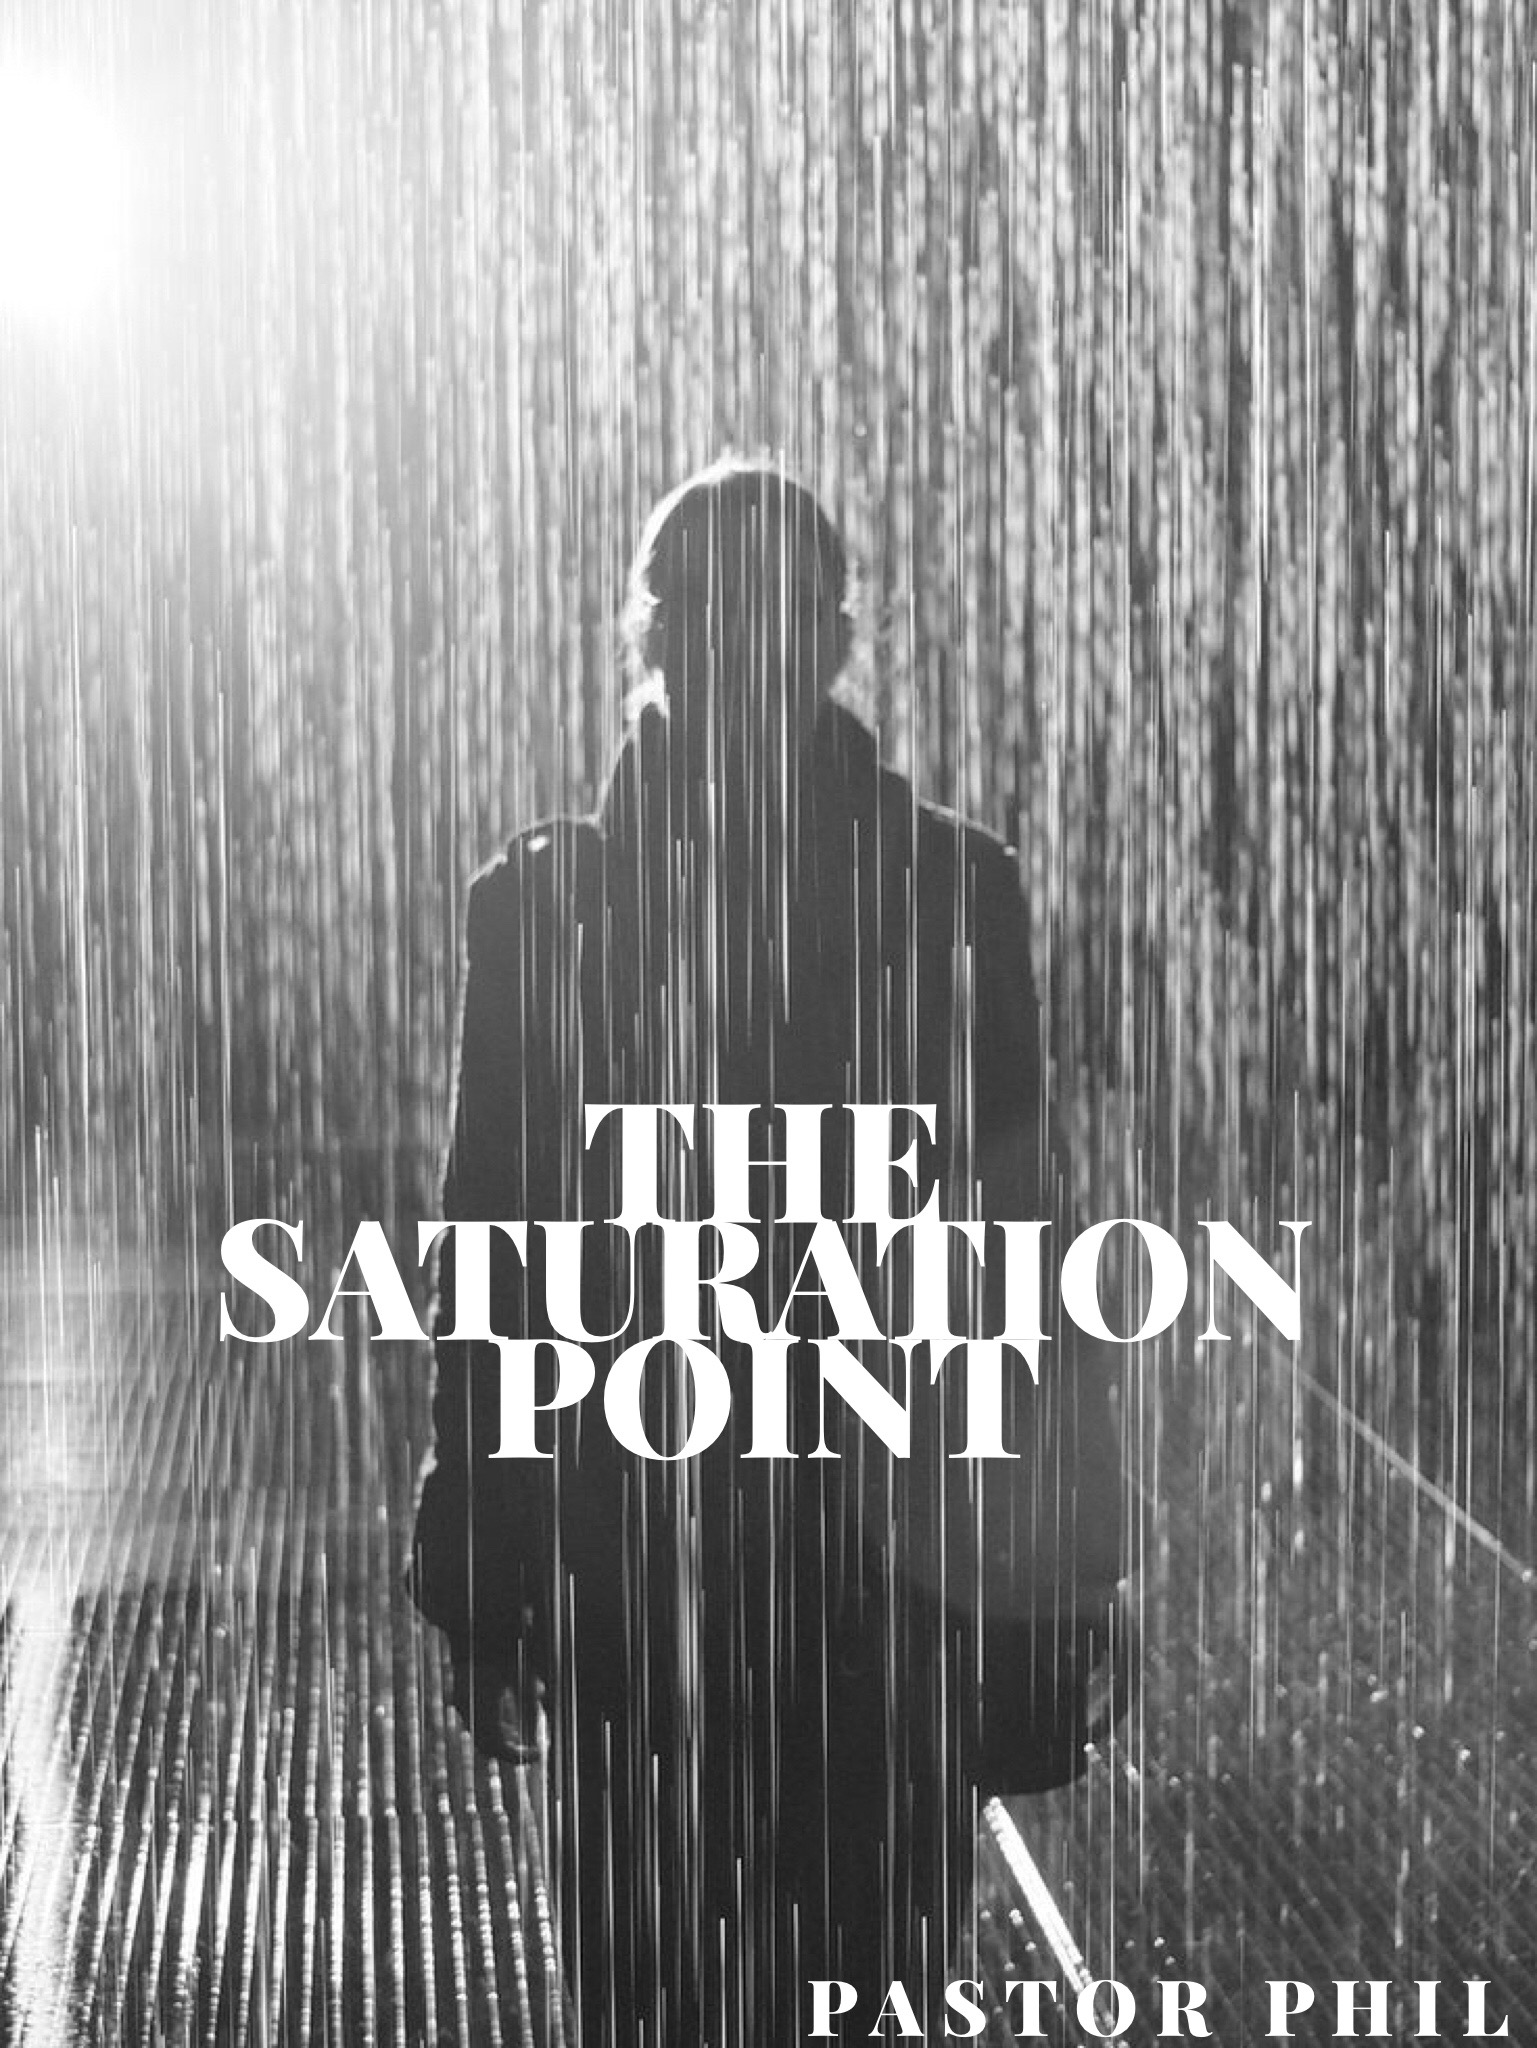 The Saturation Point